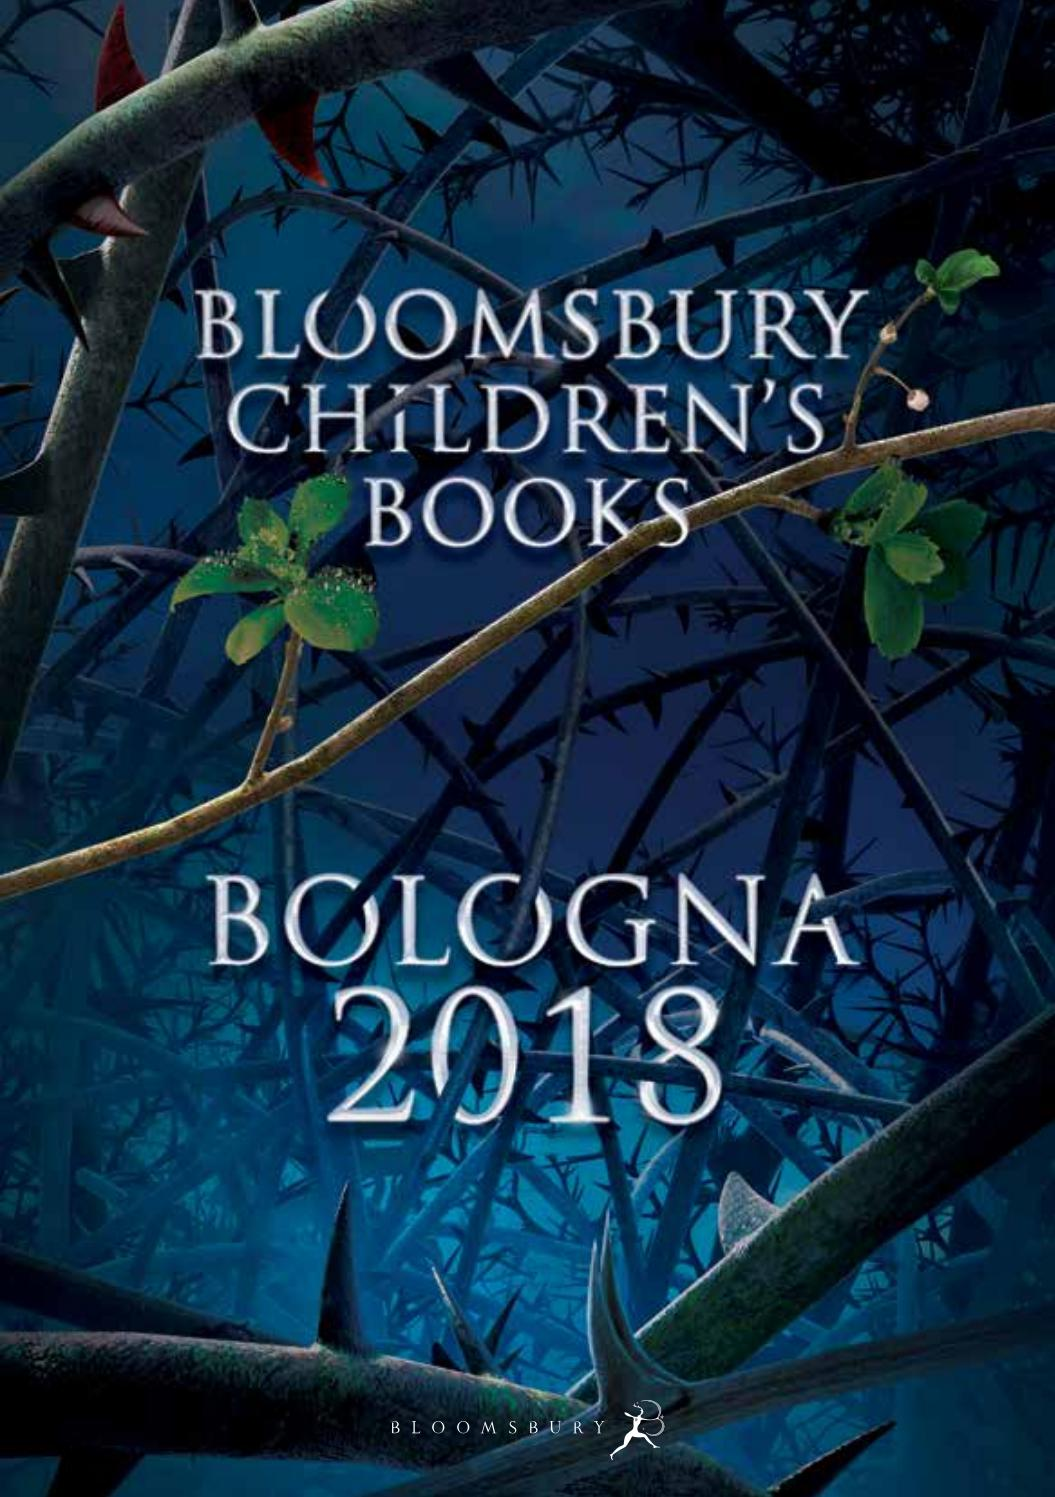 Bloomsbury Children's Books Bologna 2018 by Bloomsbury Publishing - issuu